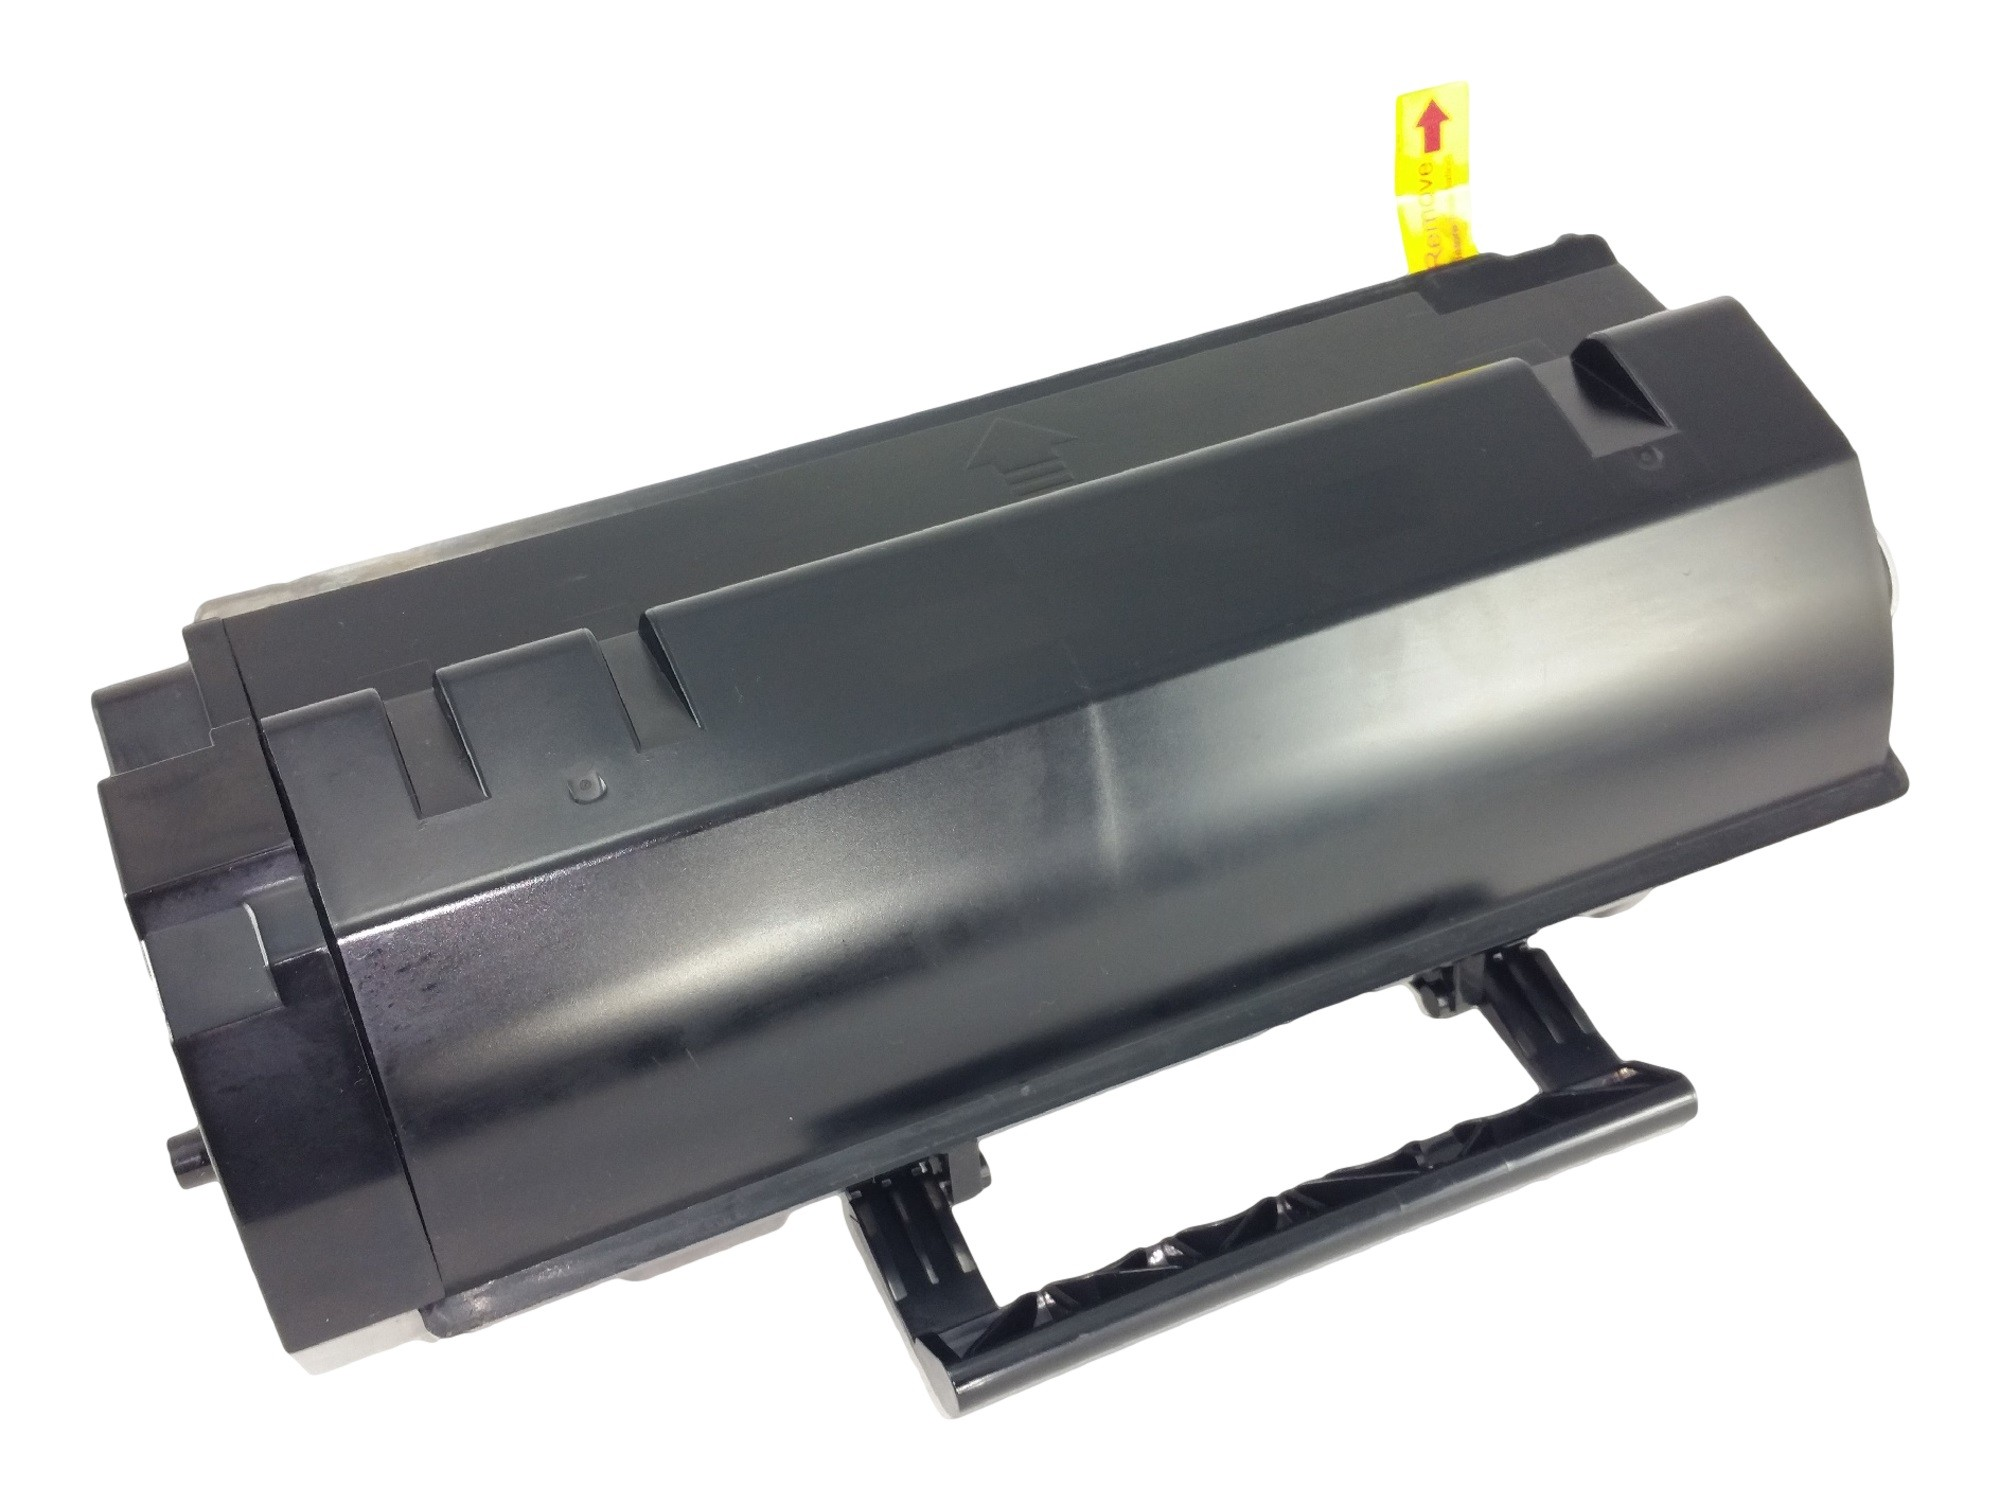 Dell B3460dn (9GG2G) 331-9807 Compatible Toner Cartridge - 20000 yield